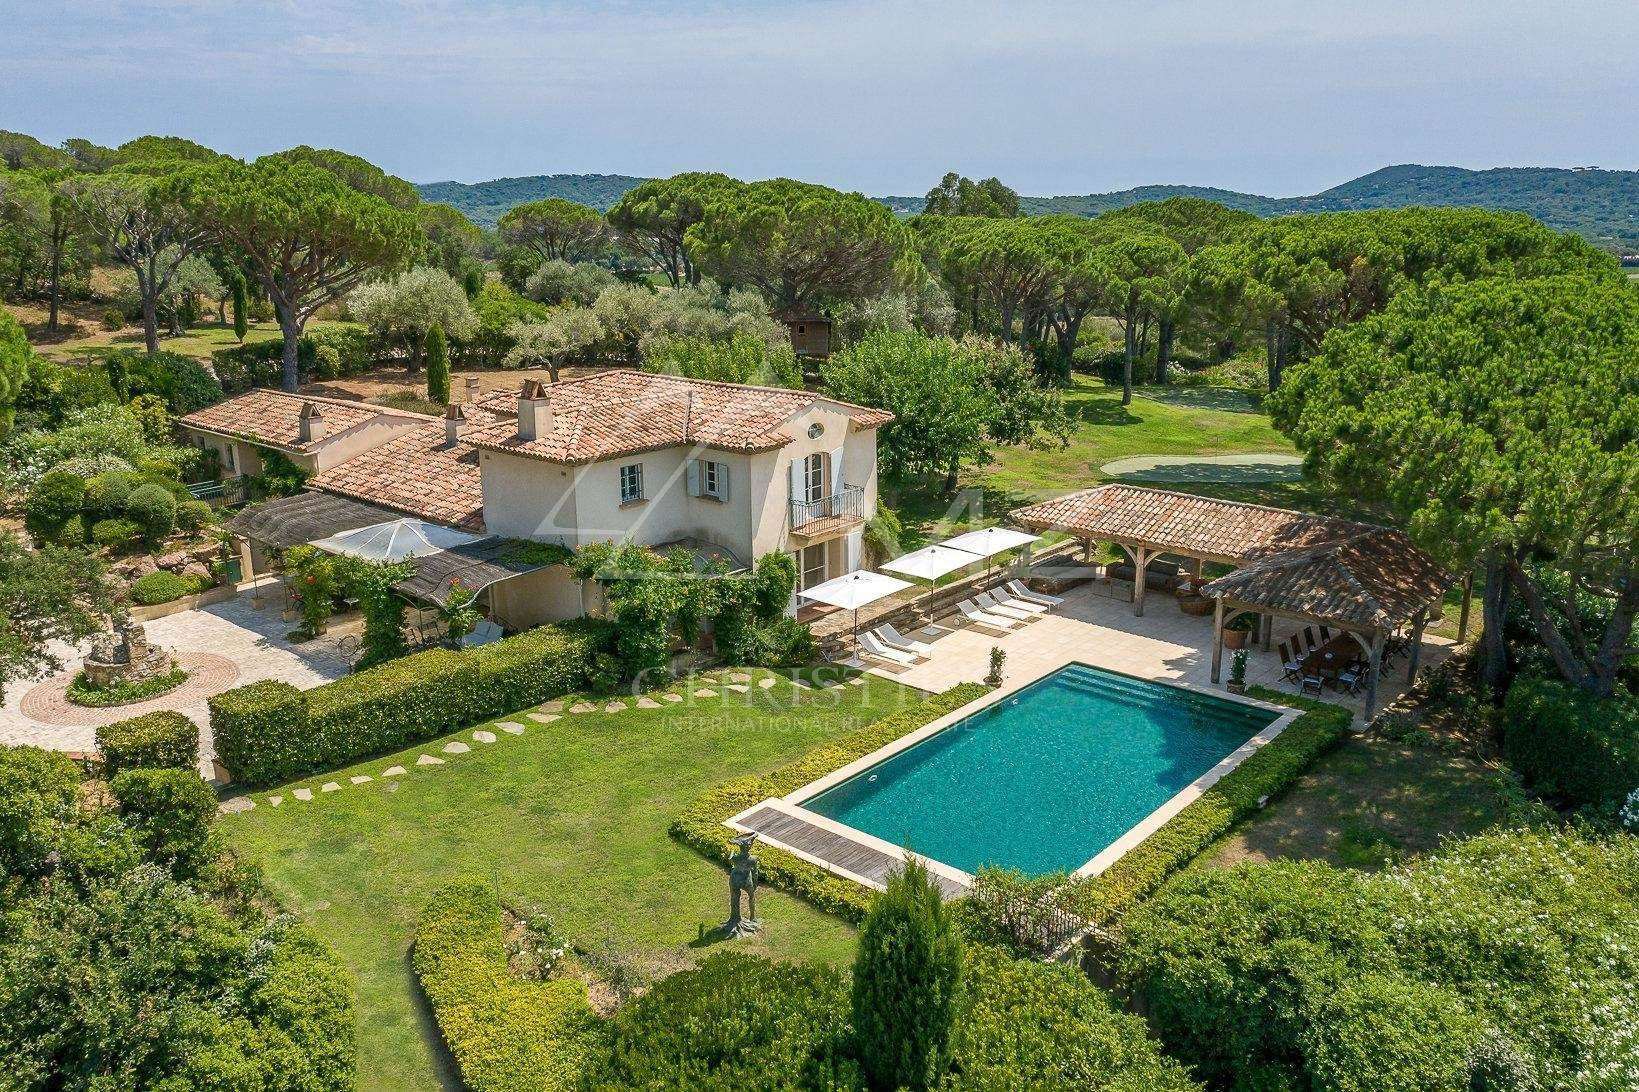 Villa/Townhouse for Sale at Ramatuelle - Nice property on a plot of 17 hectares Ramatuelle, Var,83350 France